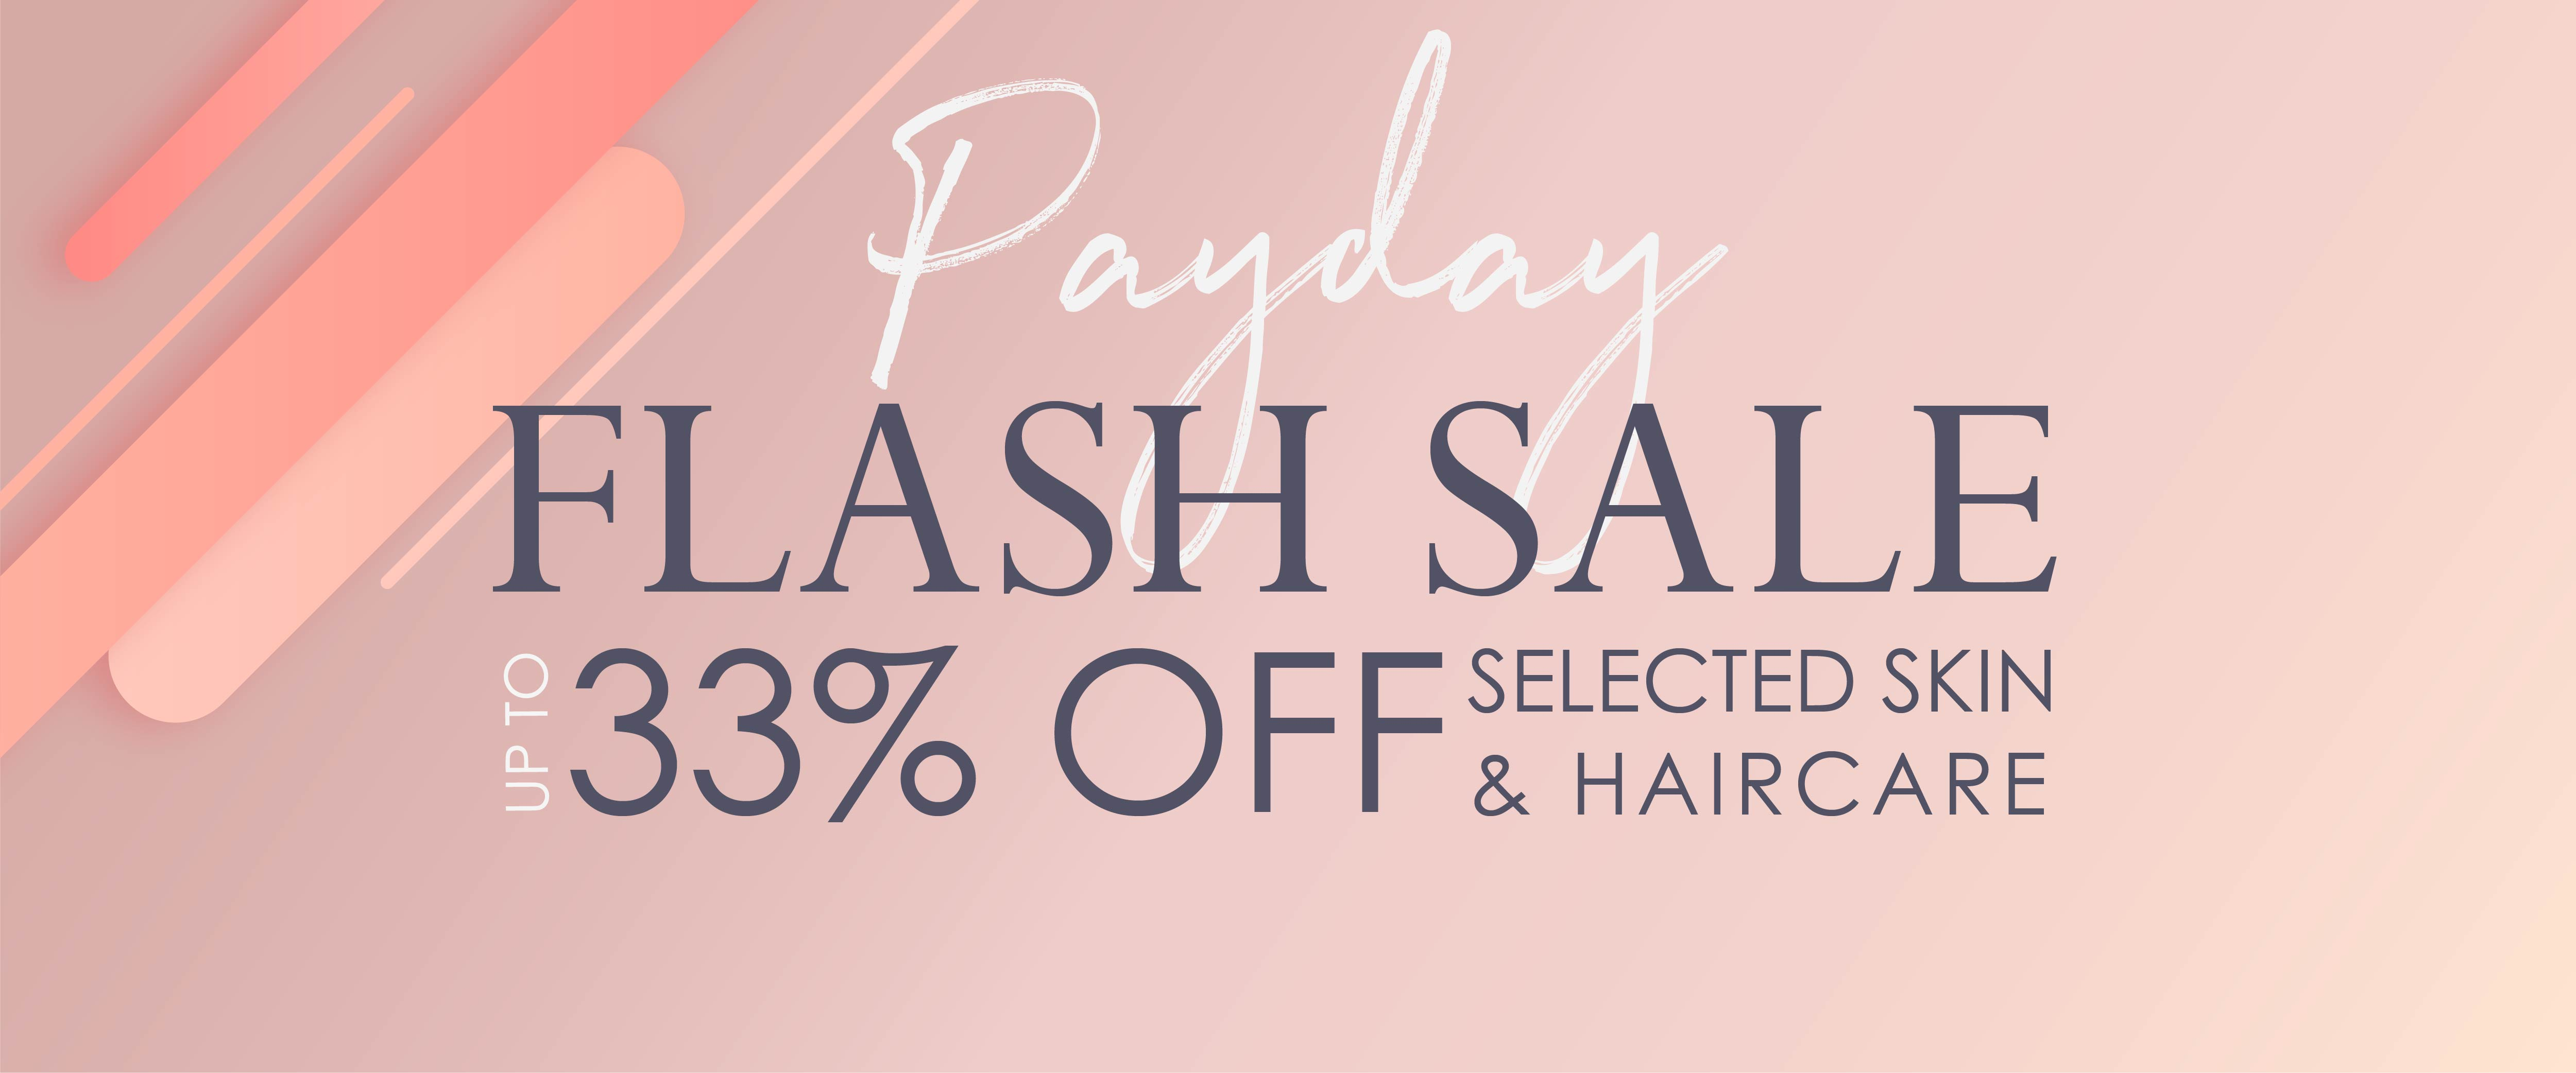 Payday Flash Sale